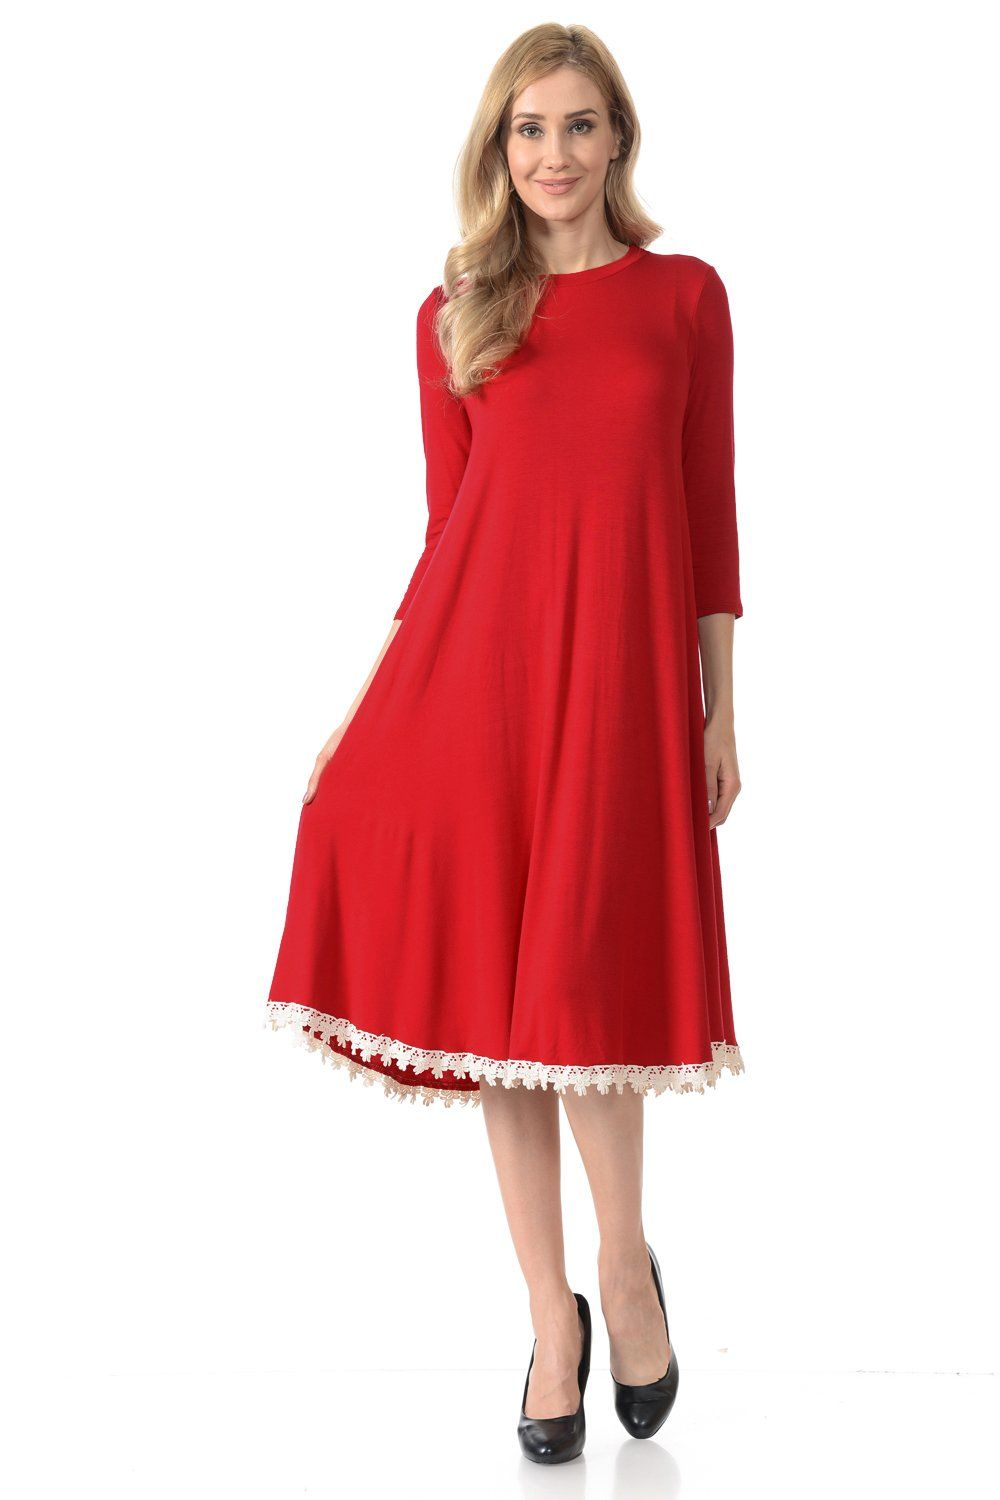 274a8810a6d80 Say Yes to the Dress! This dress is so comfortable and flattering that you  will want to wear it all day long. You can easily dress it up or down with  any ...